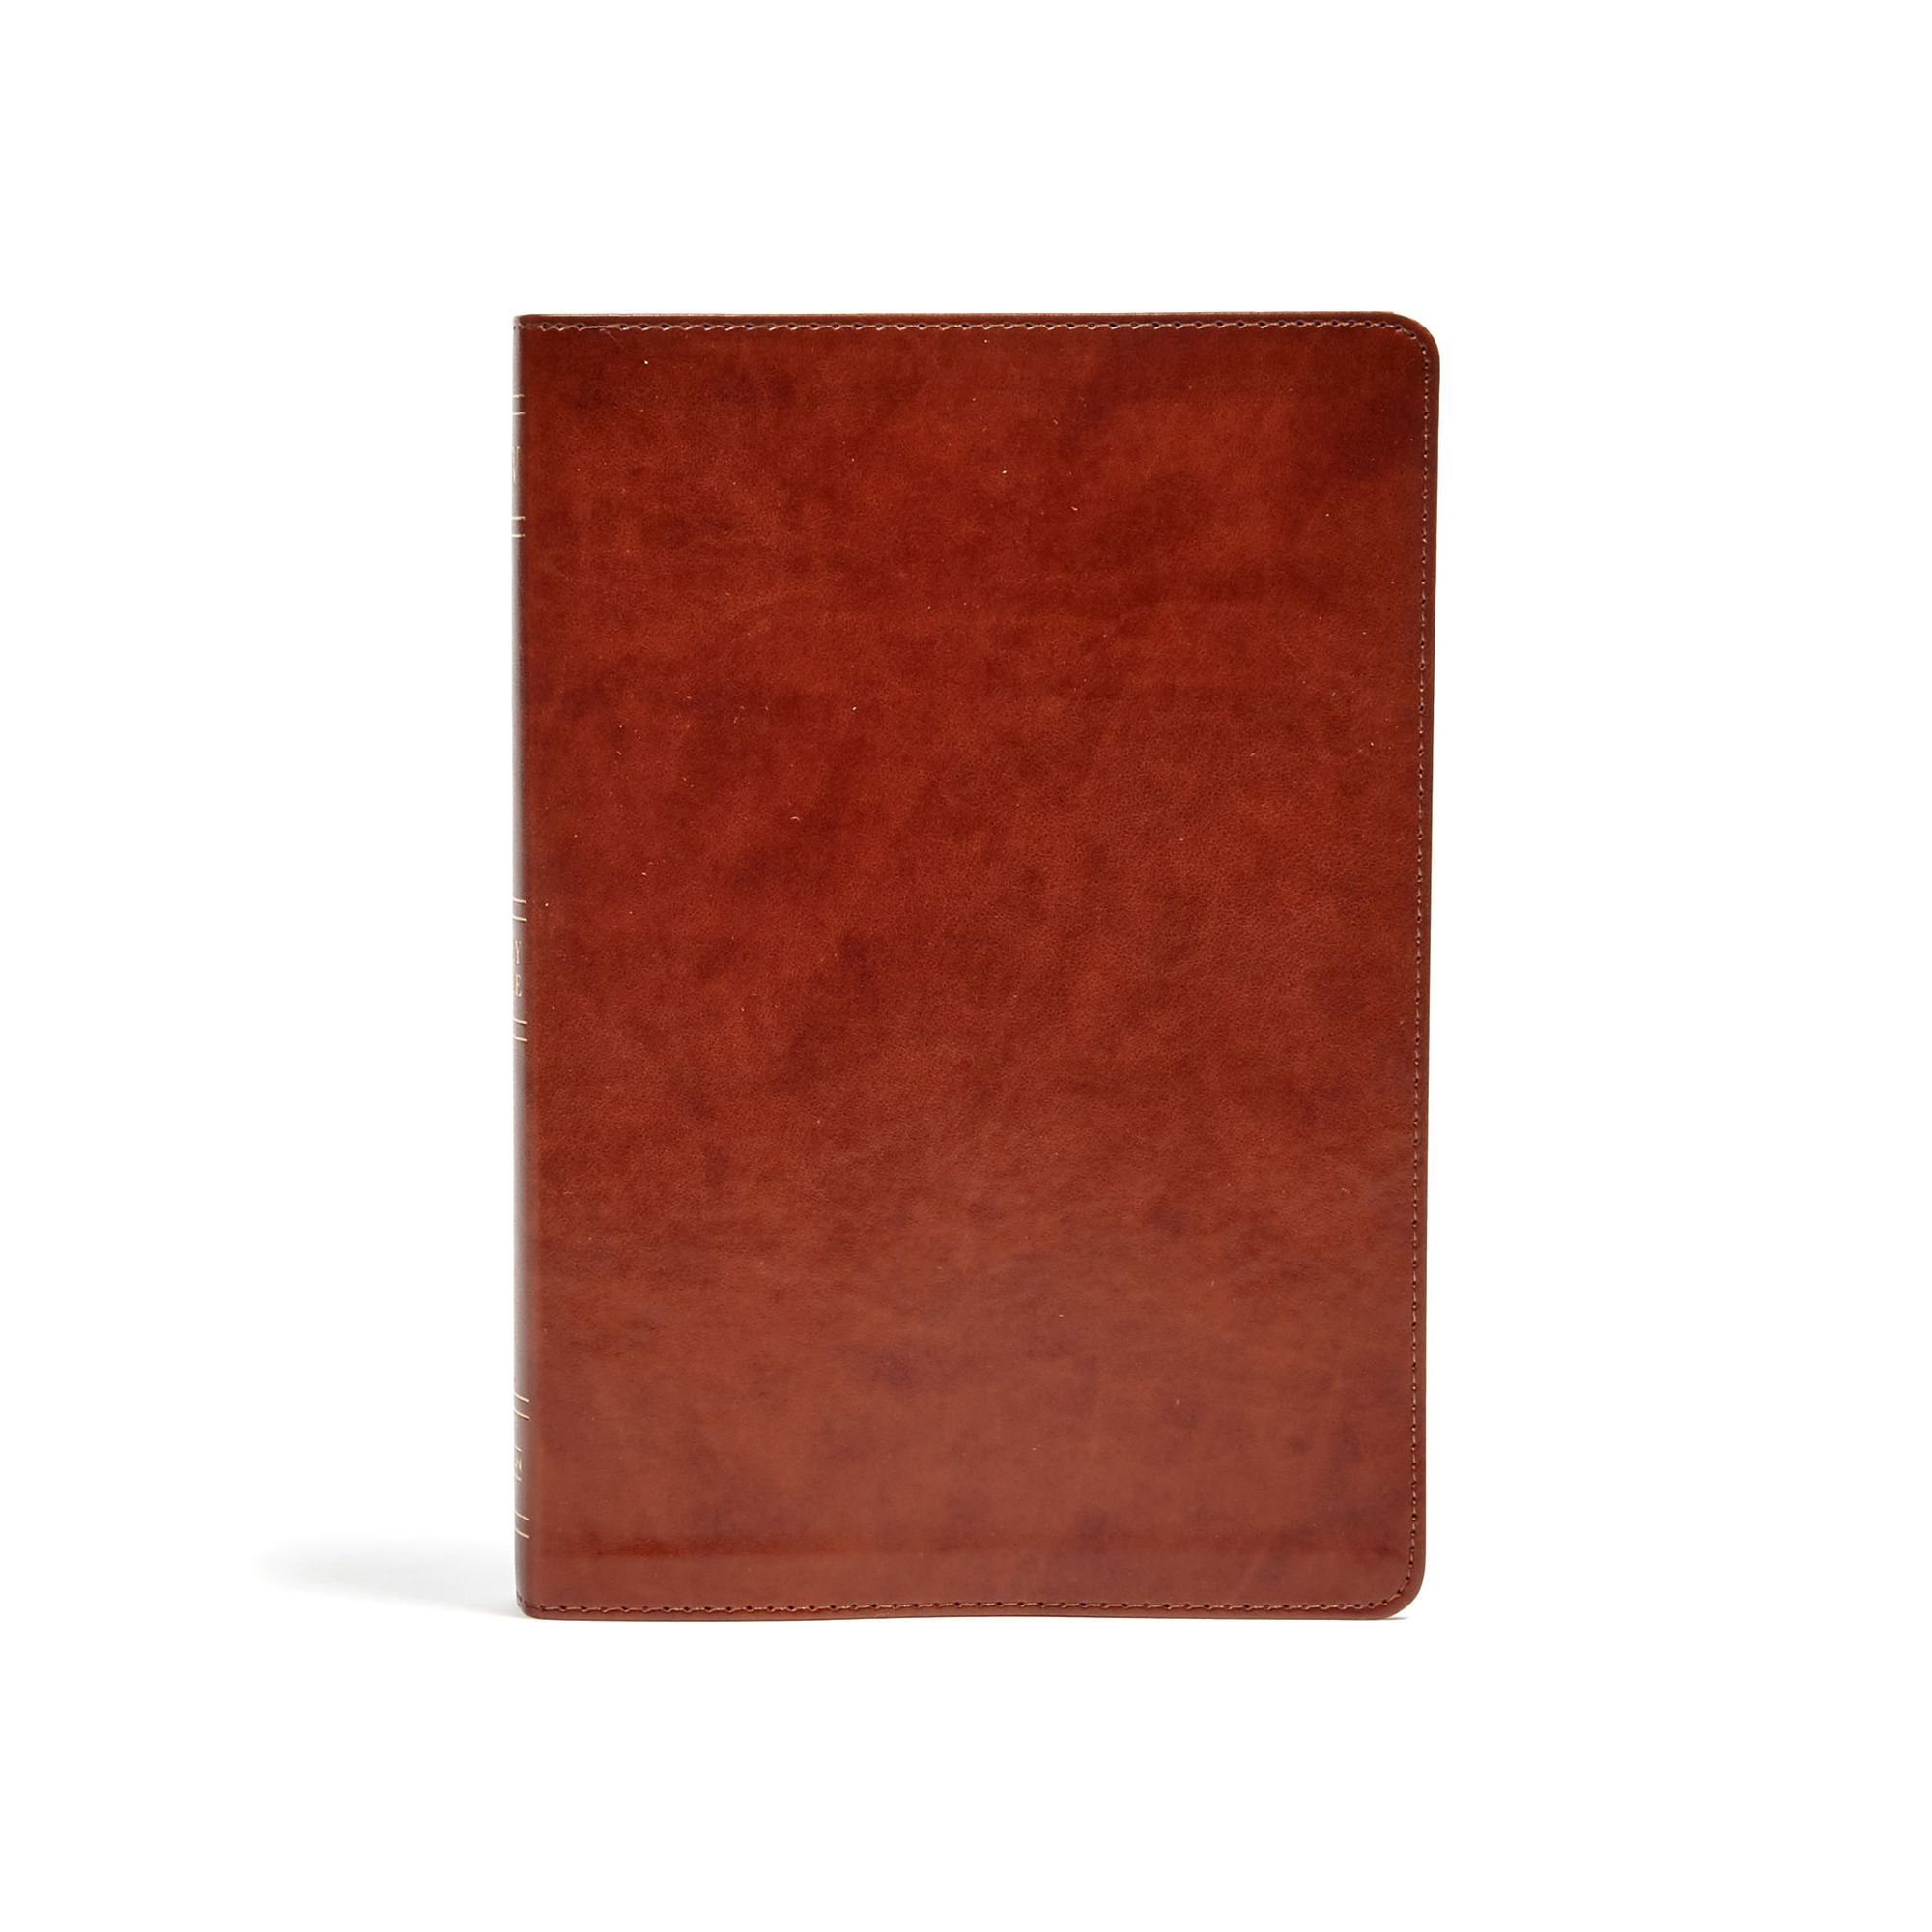 KJV Large Print Ultrathin Reference Bible, British Tan LeatherTouch, Black Letter Edition